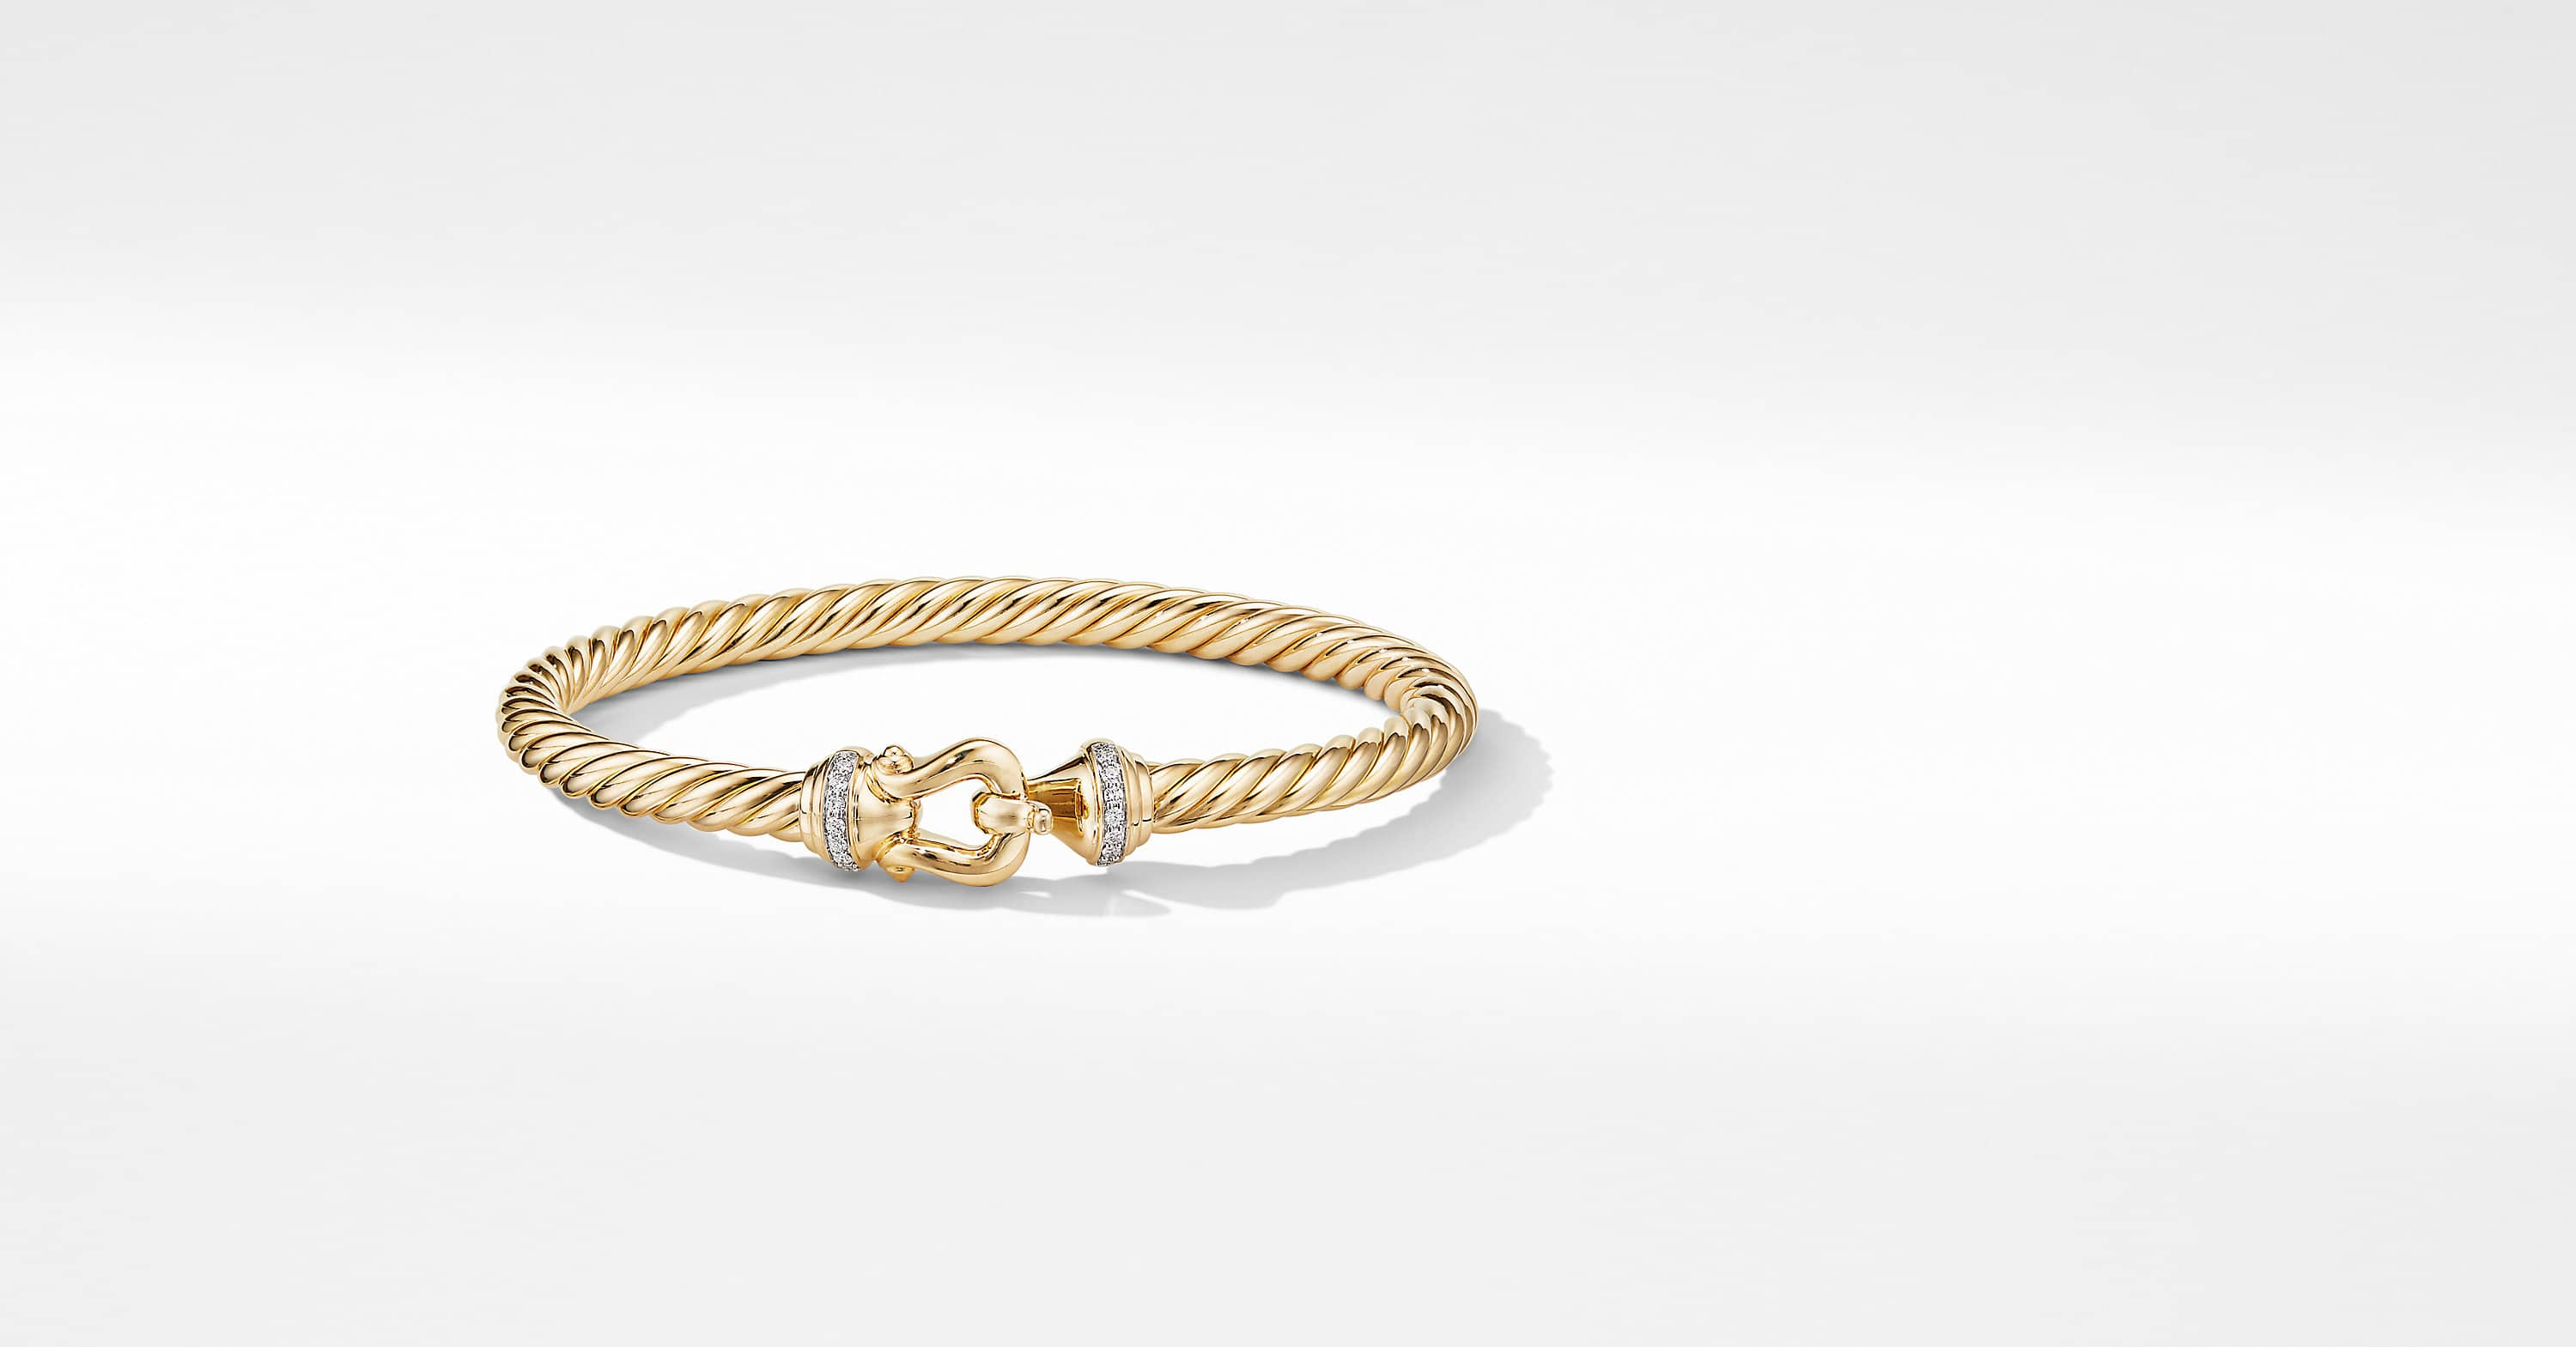 Buckle Bracelet in 18K Yellow Gold with Diamonds, 5mm